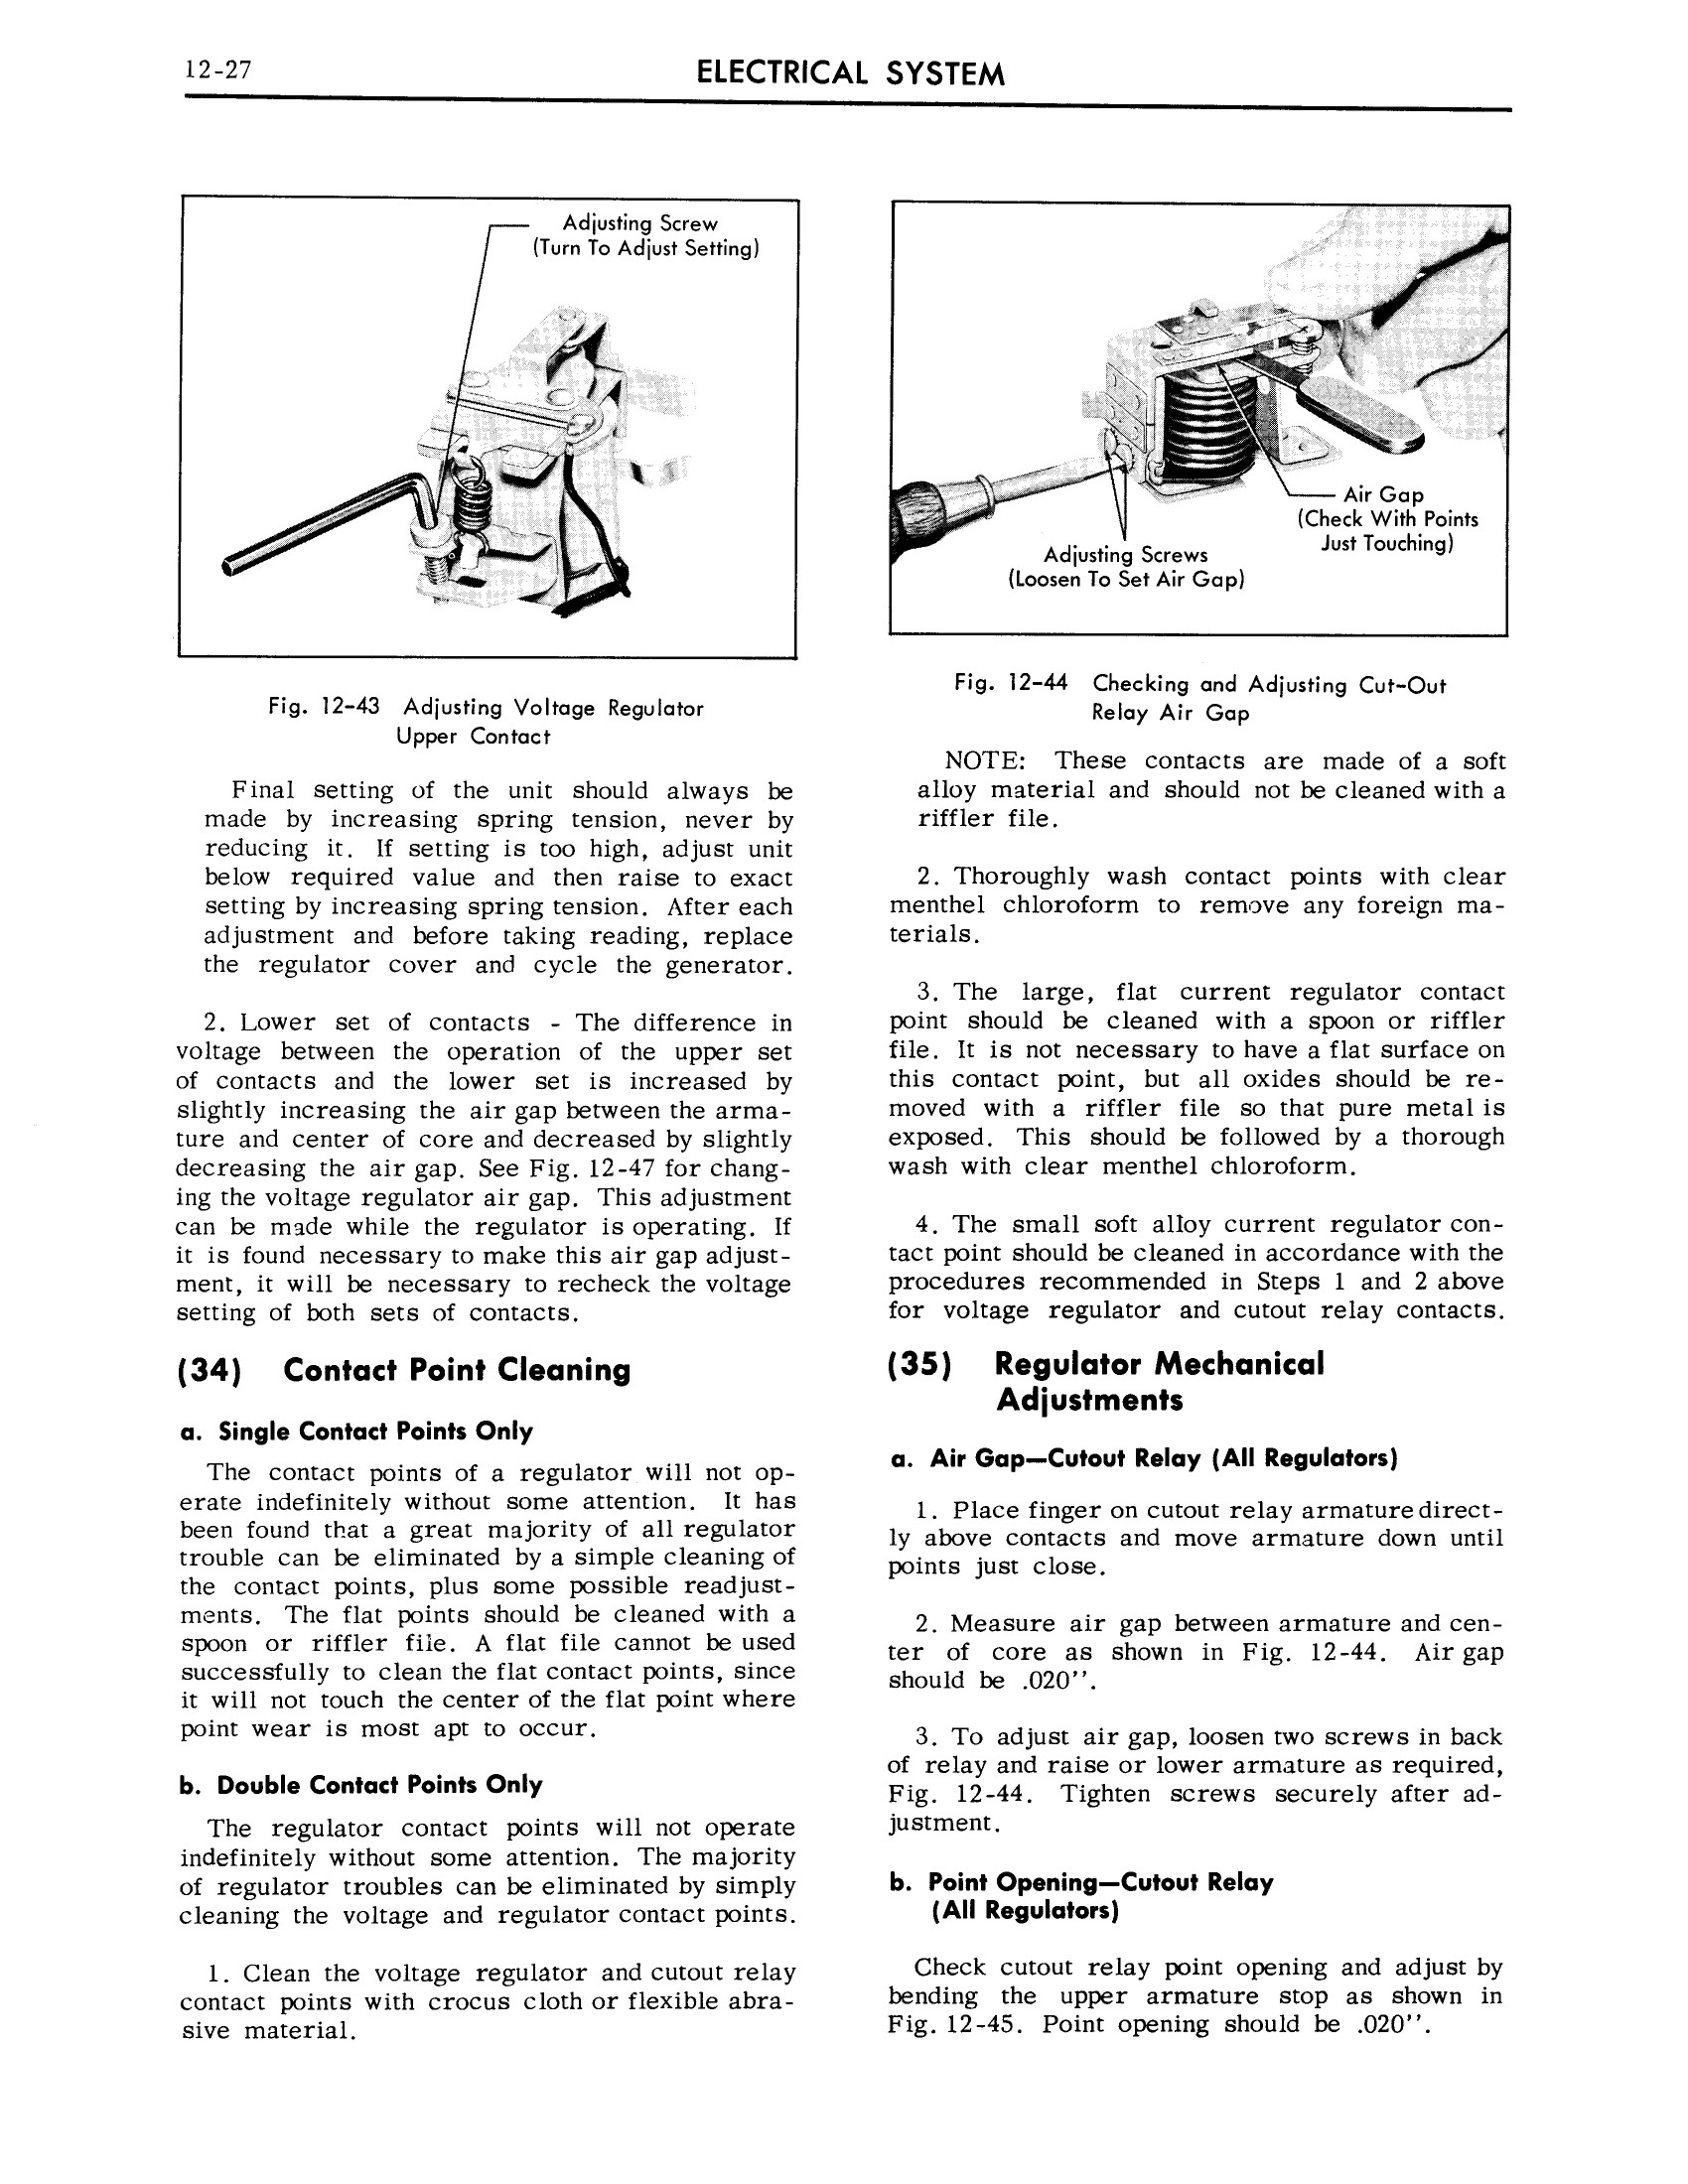 1959 Cadillac Shop Manual- Electrical System Page 27 of 49